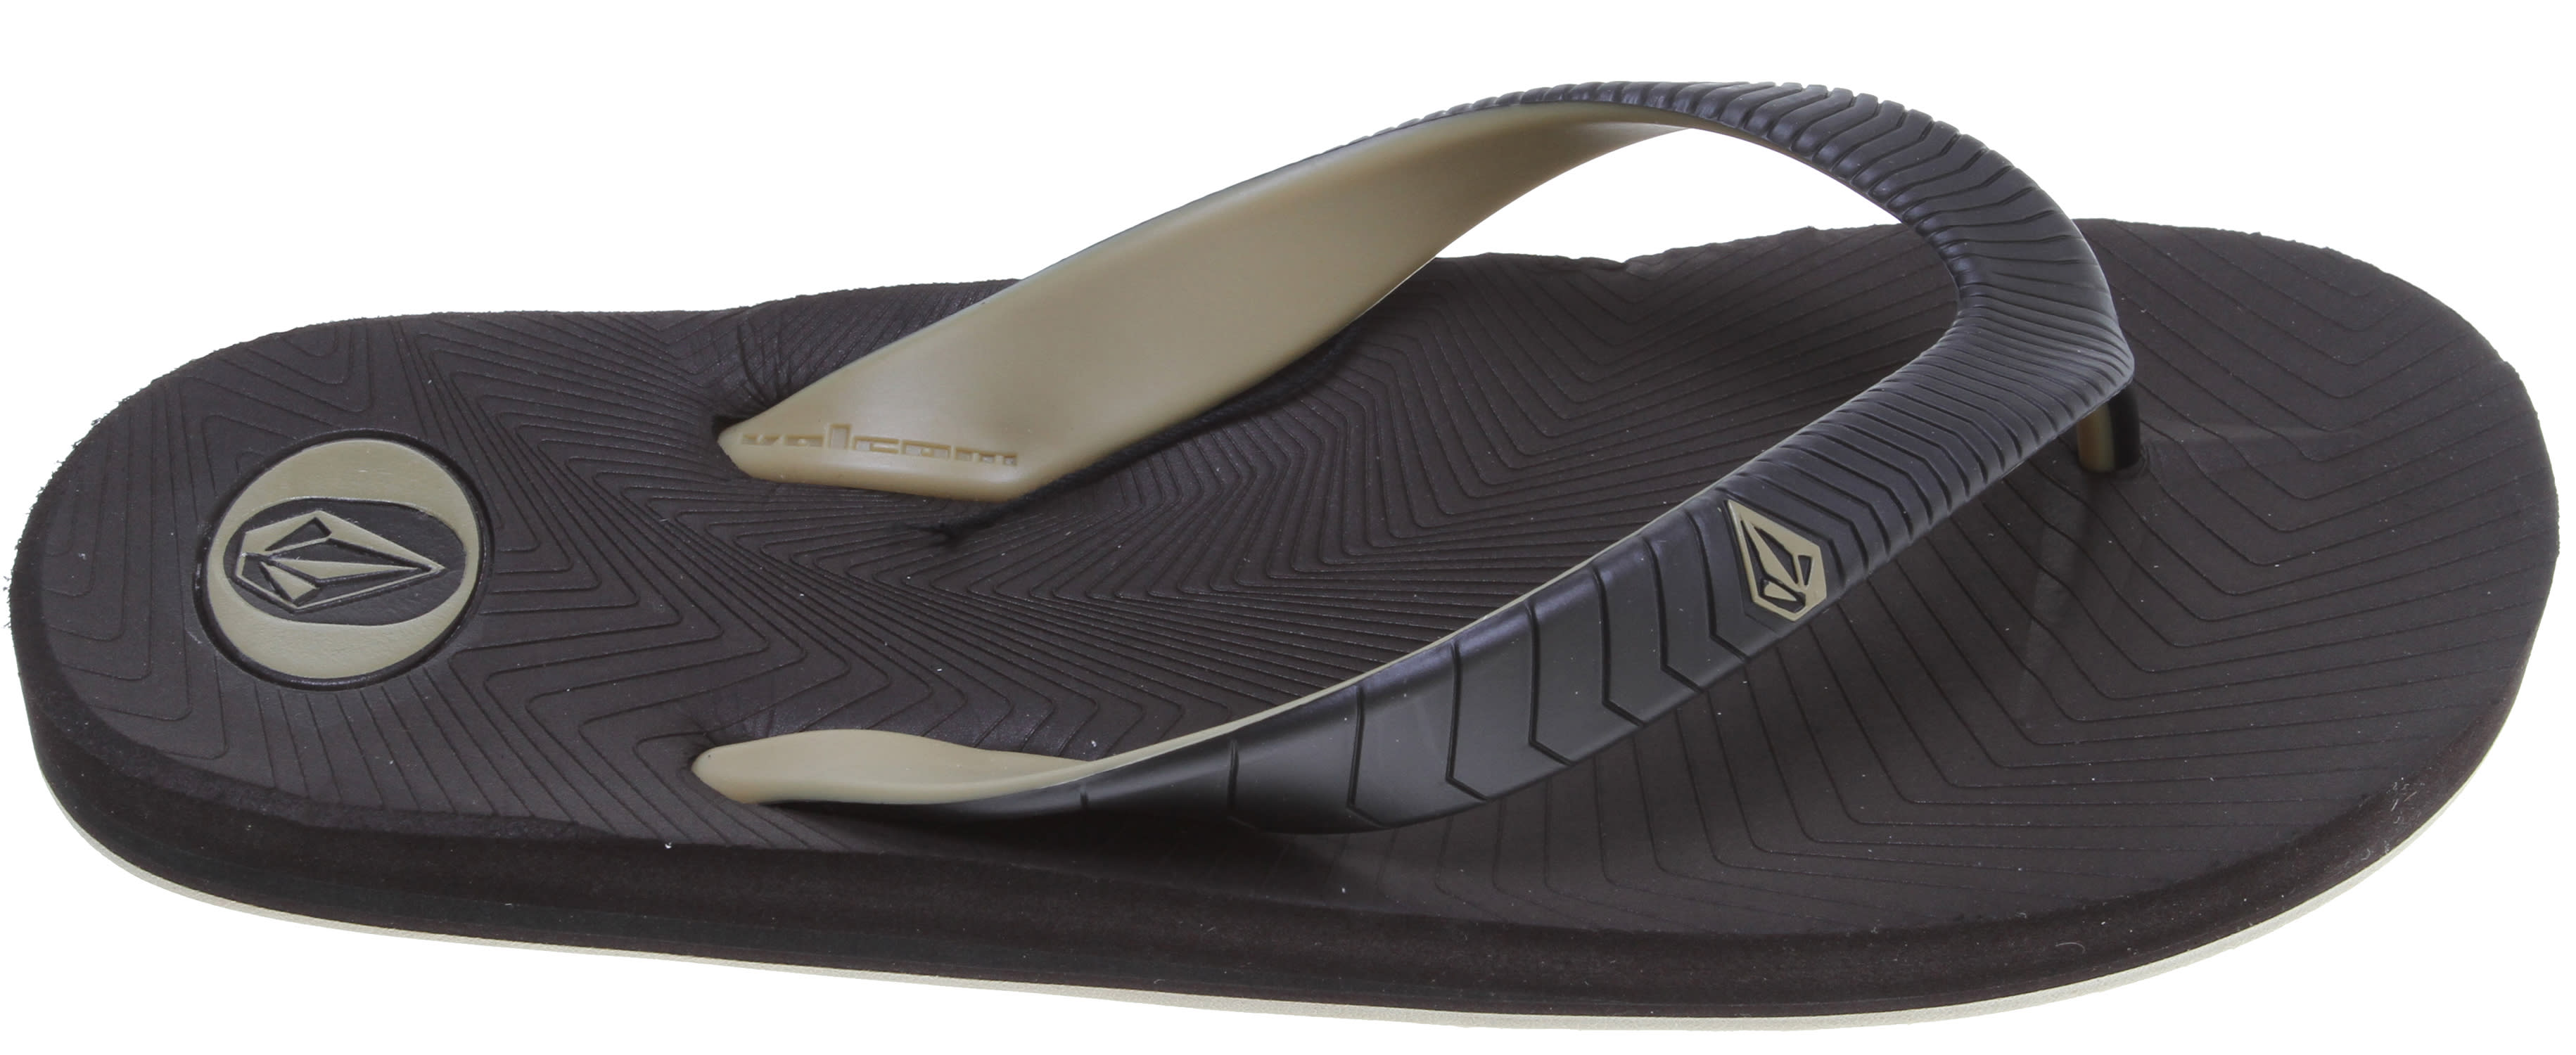 Volcom Concourse Creedlers Sandals Brown - Men's